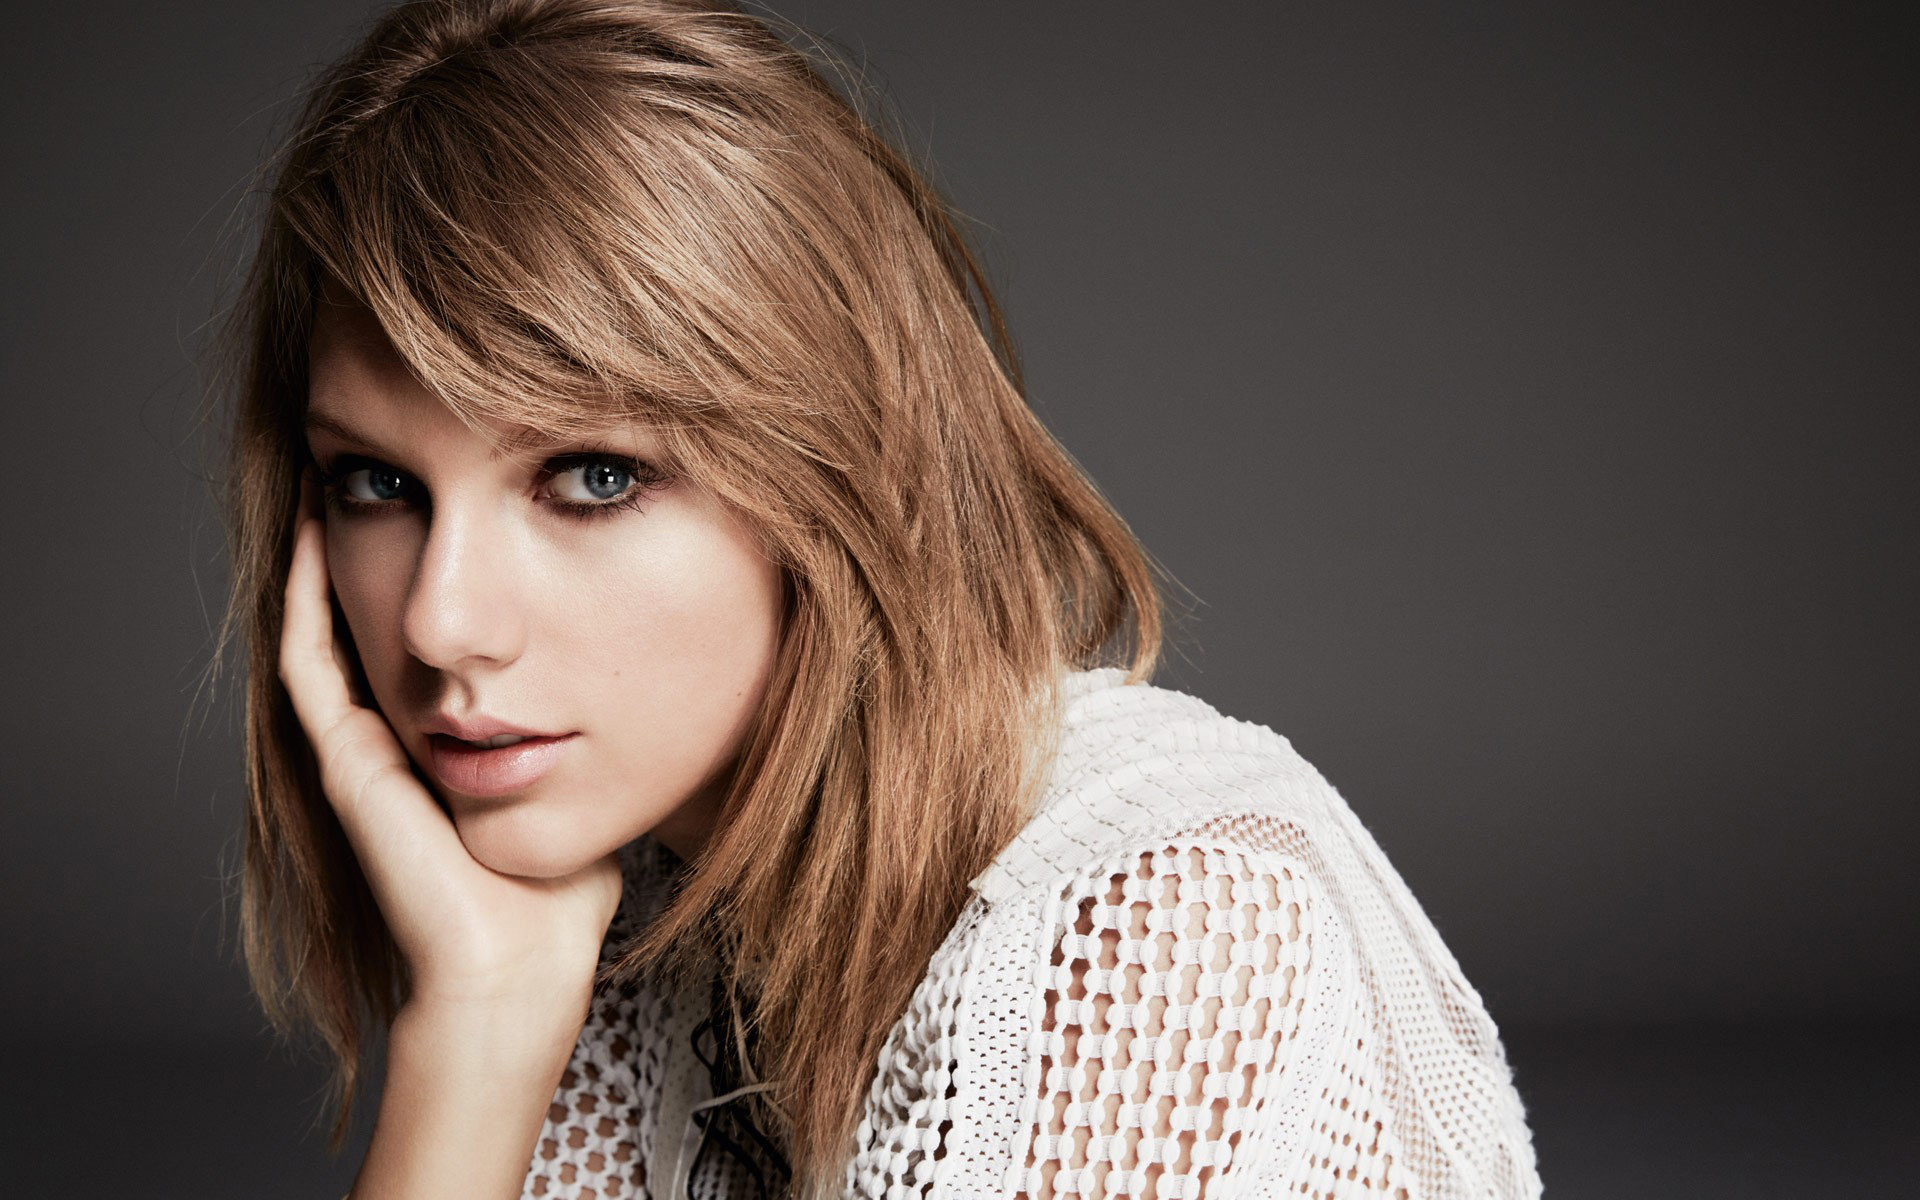 Taylor Swift Wallpapers Ultra High Quality Wallpapers 1920x1200